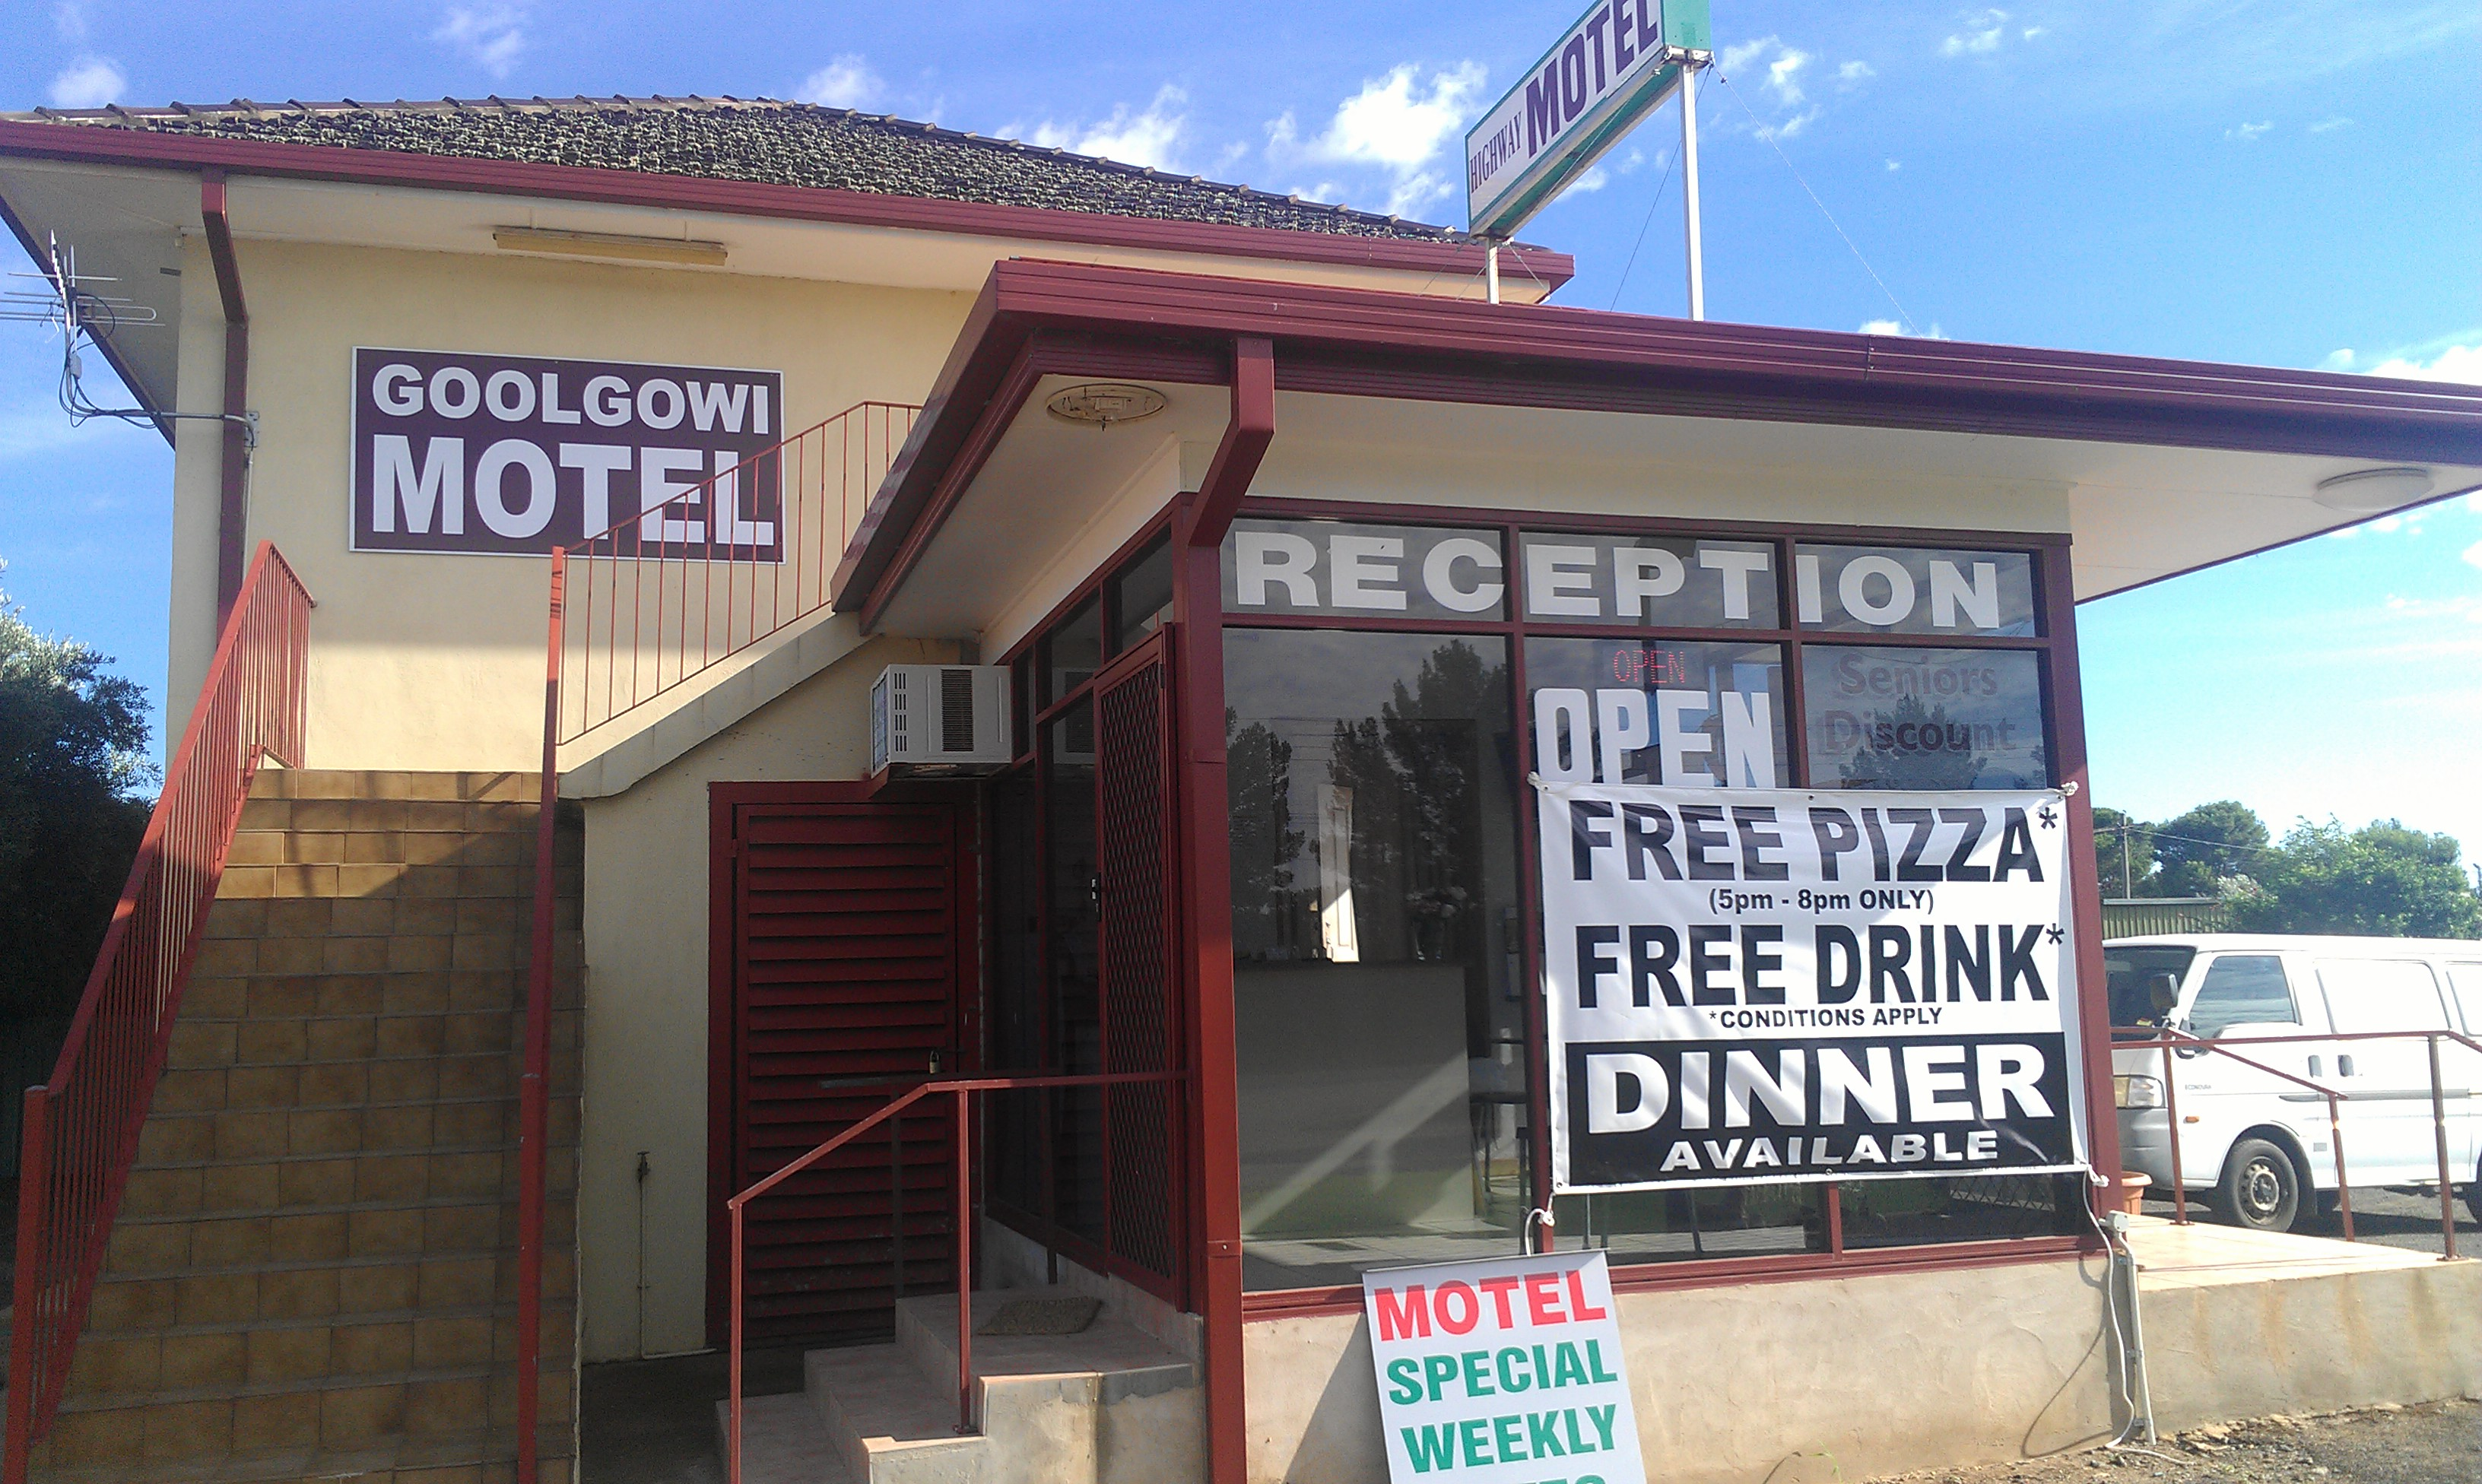 Royal Mail Hotel Goolgowi - Accommodation Kalgoorlie